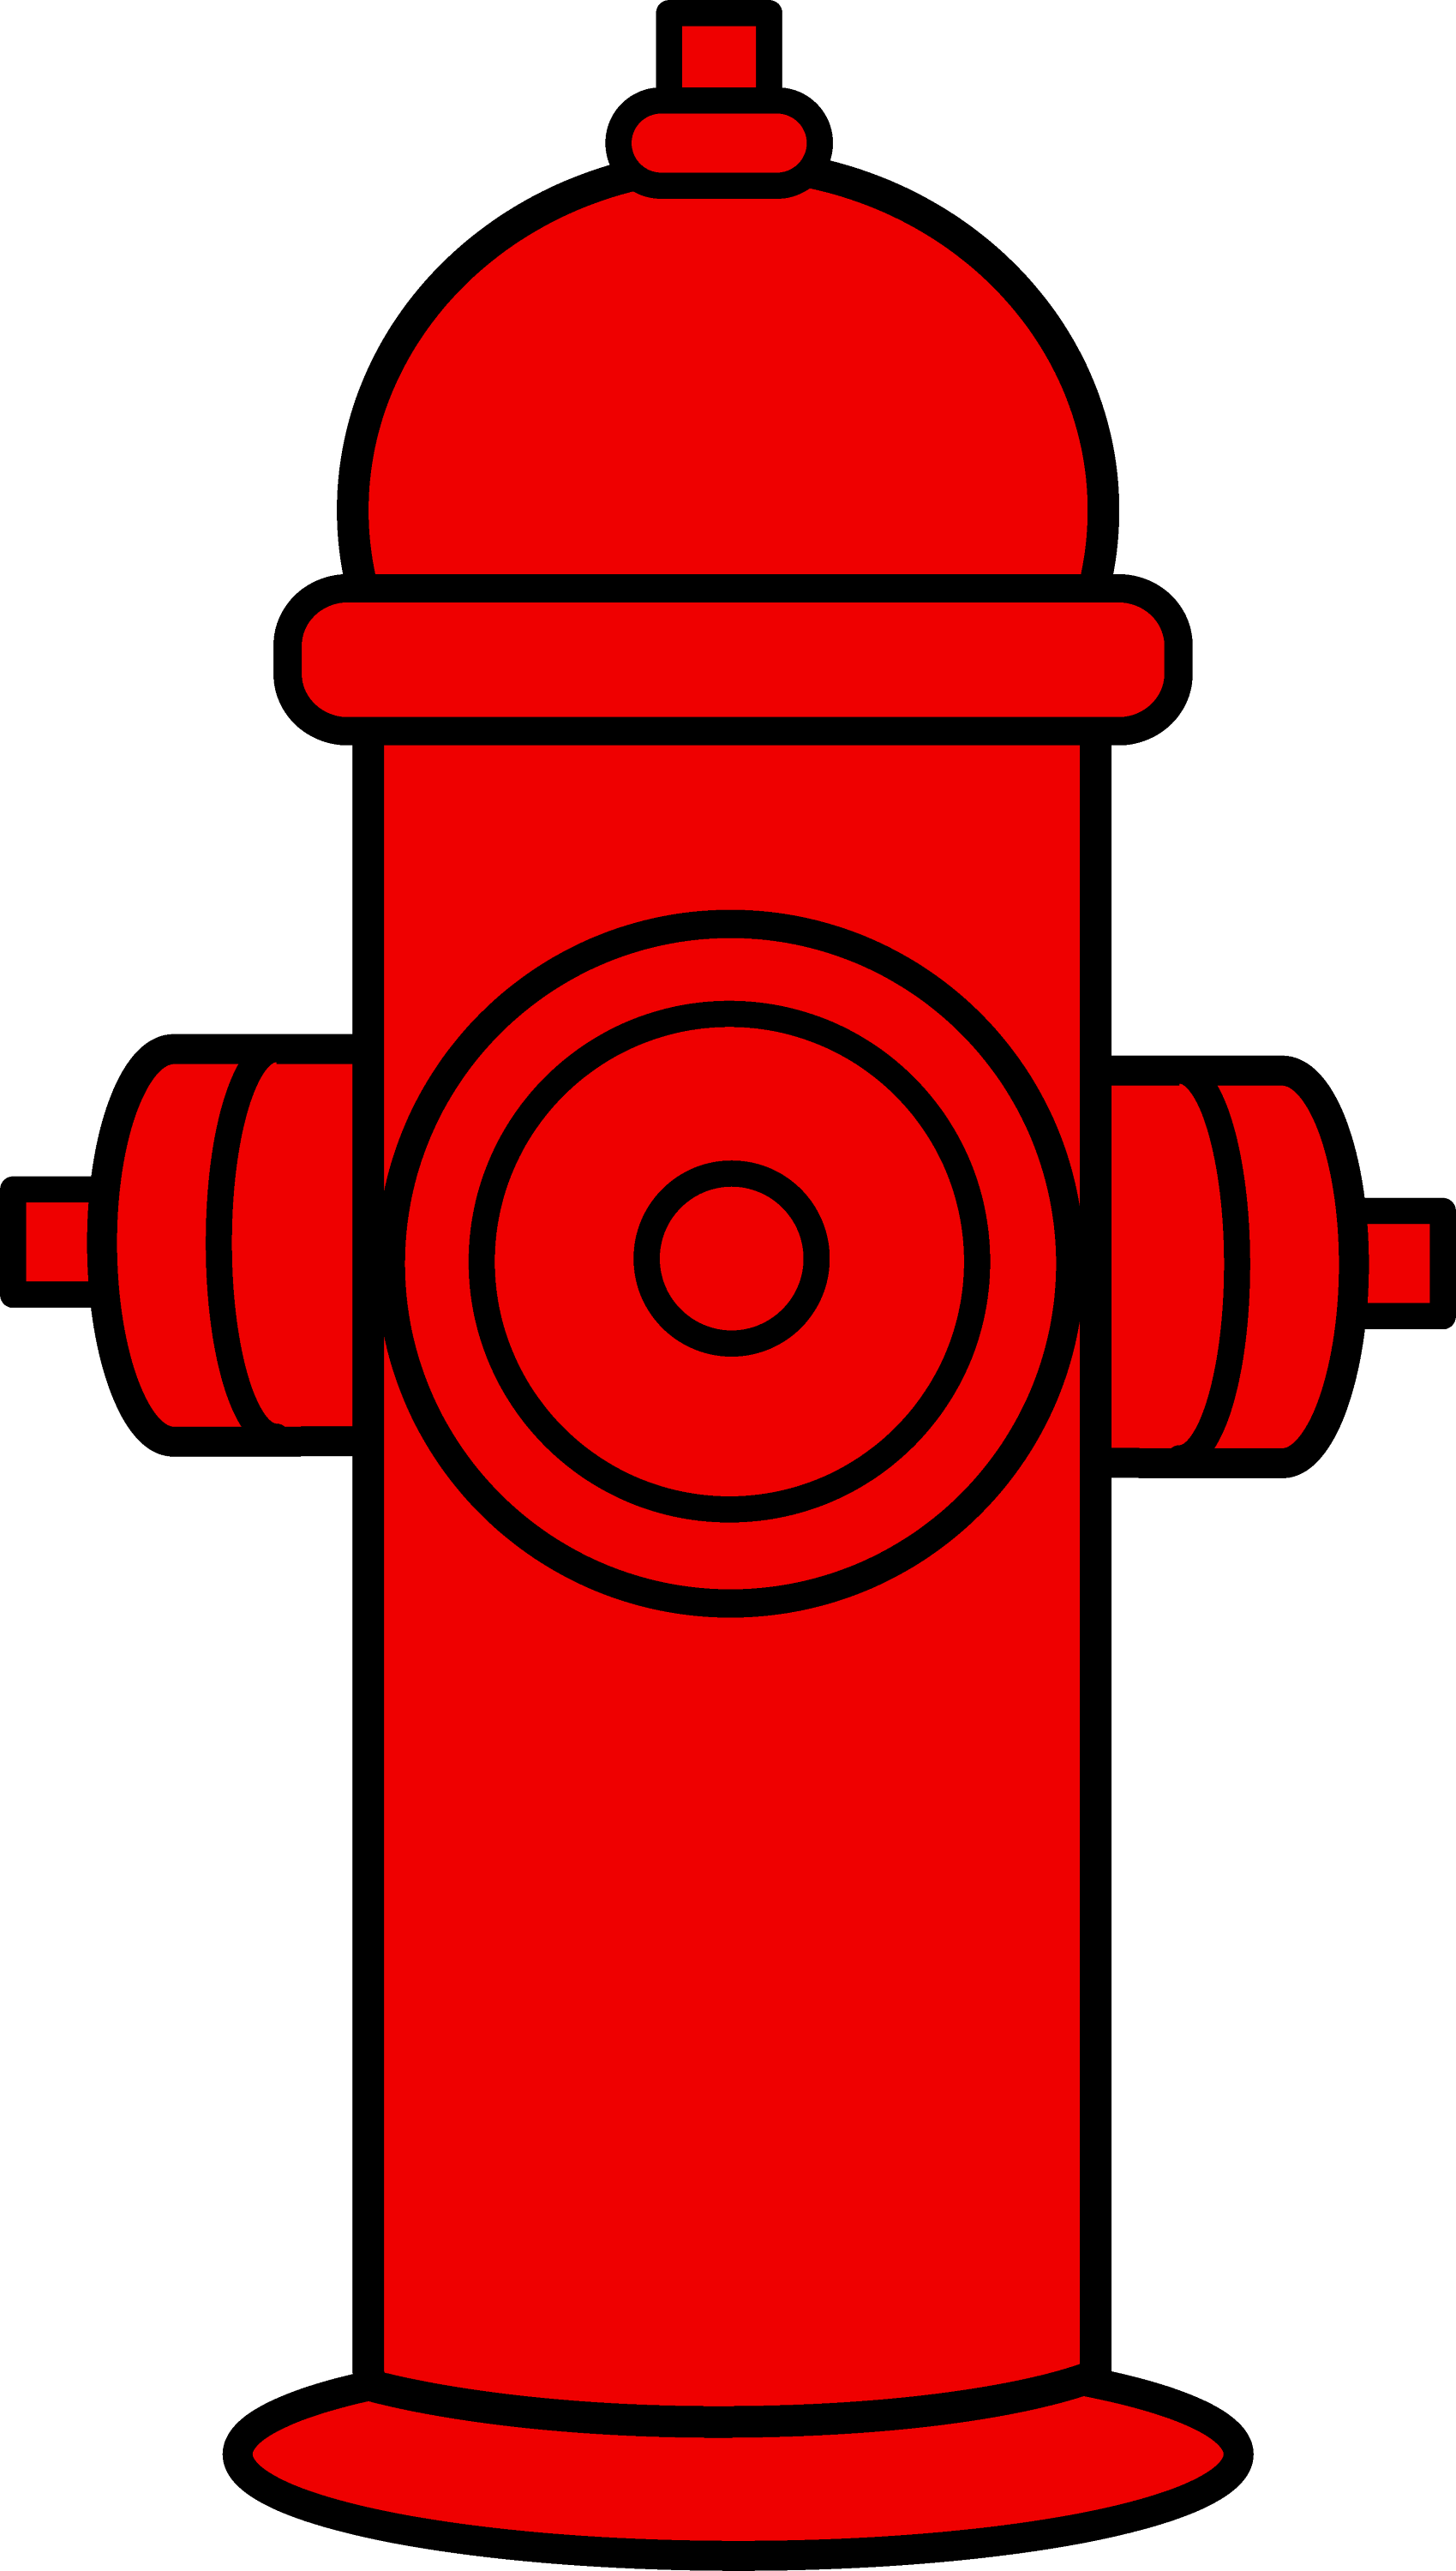 red fire hydrant clipart free clip art rh sweetclipart com fire hydrant clip art free download fire hydrant clip art free